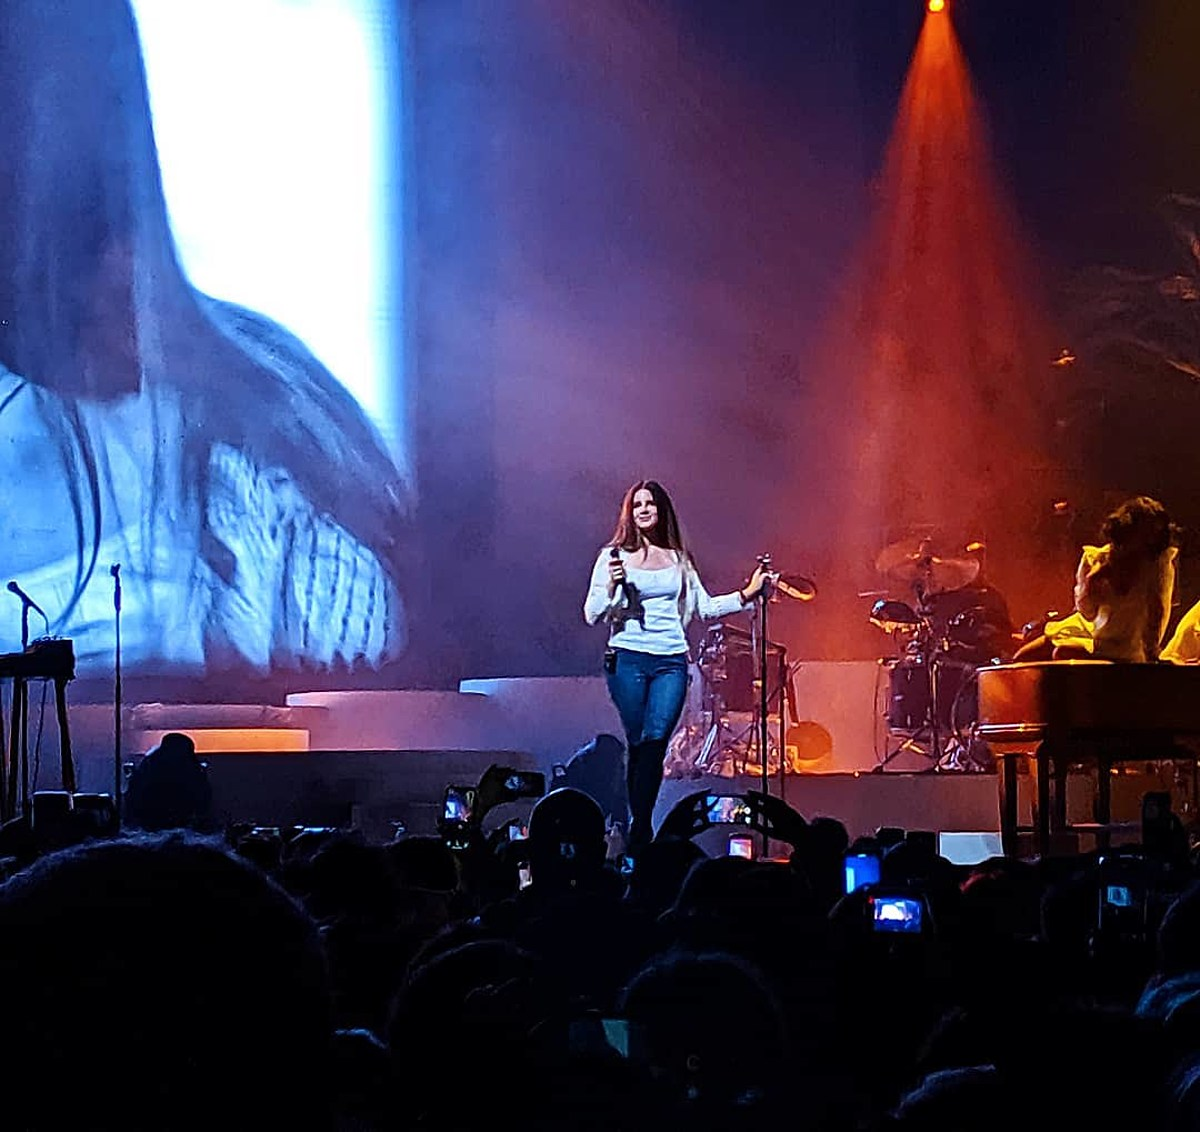 Lana Del Rey covered Joni Mitchell, planning covers LP, discussed Ann Powers